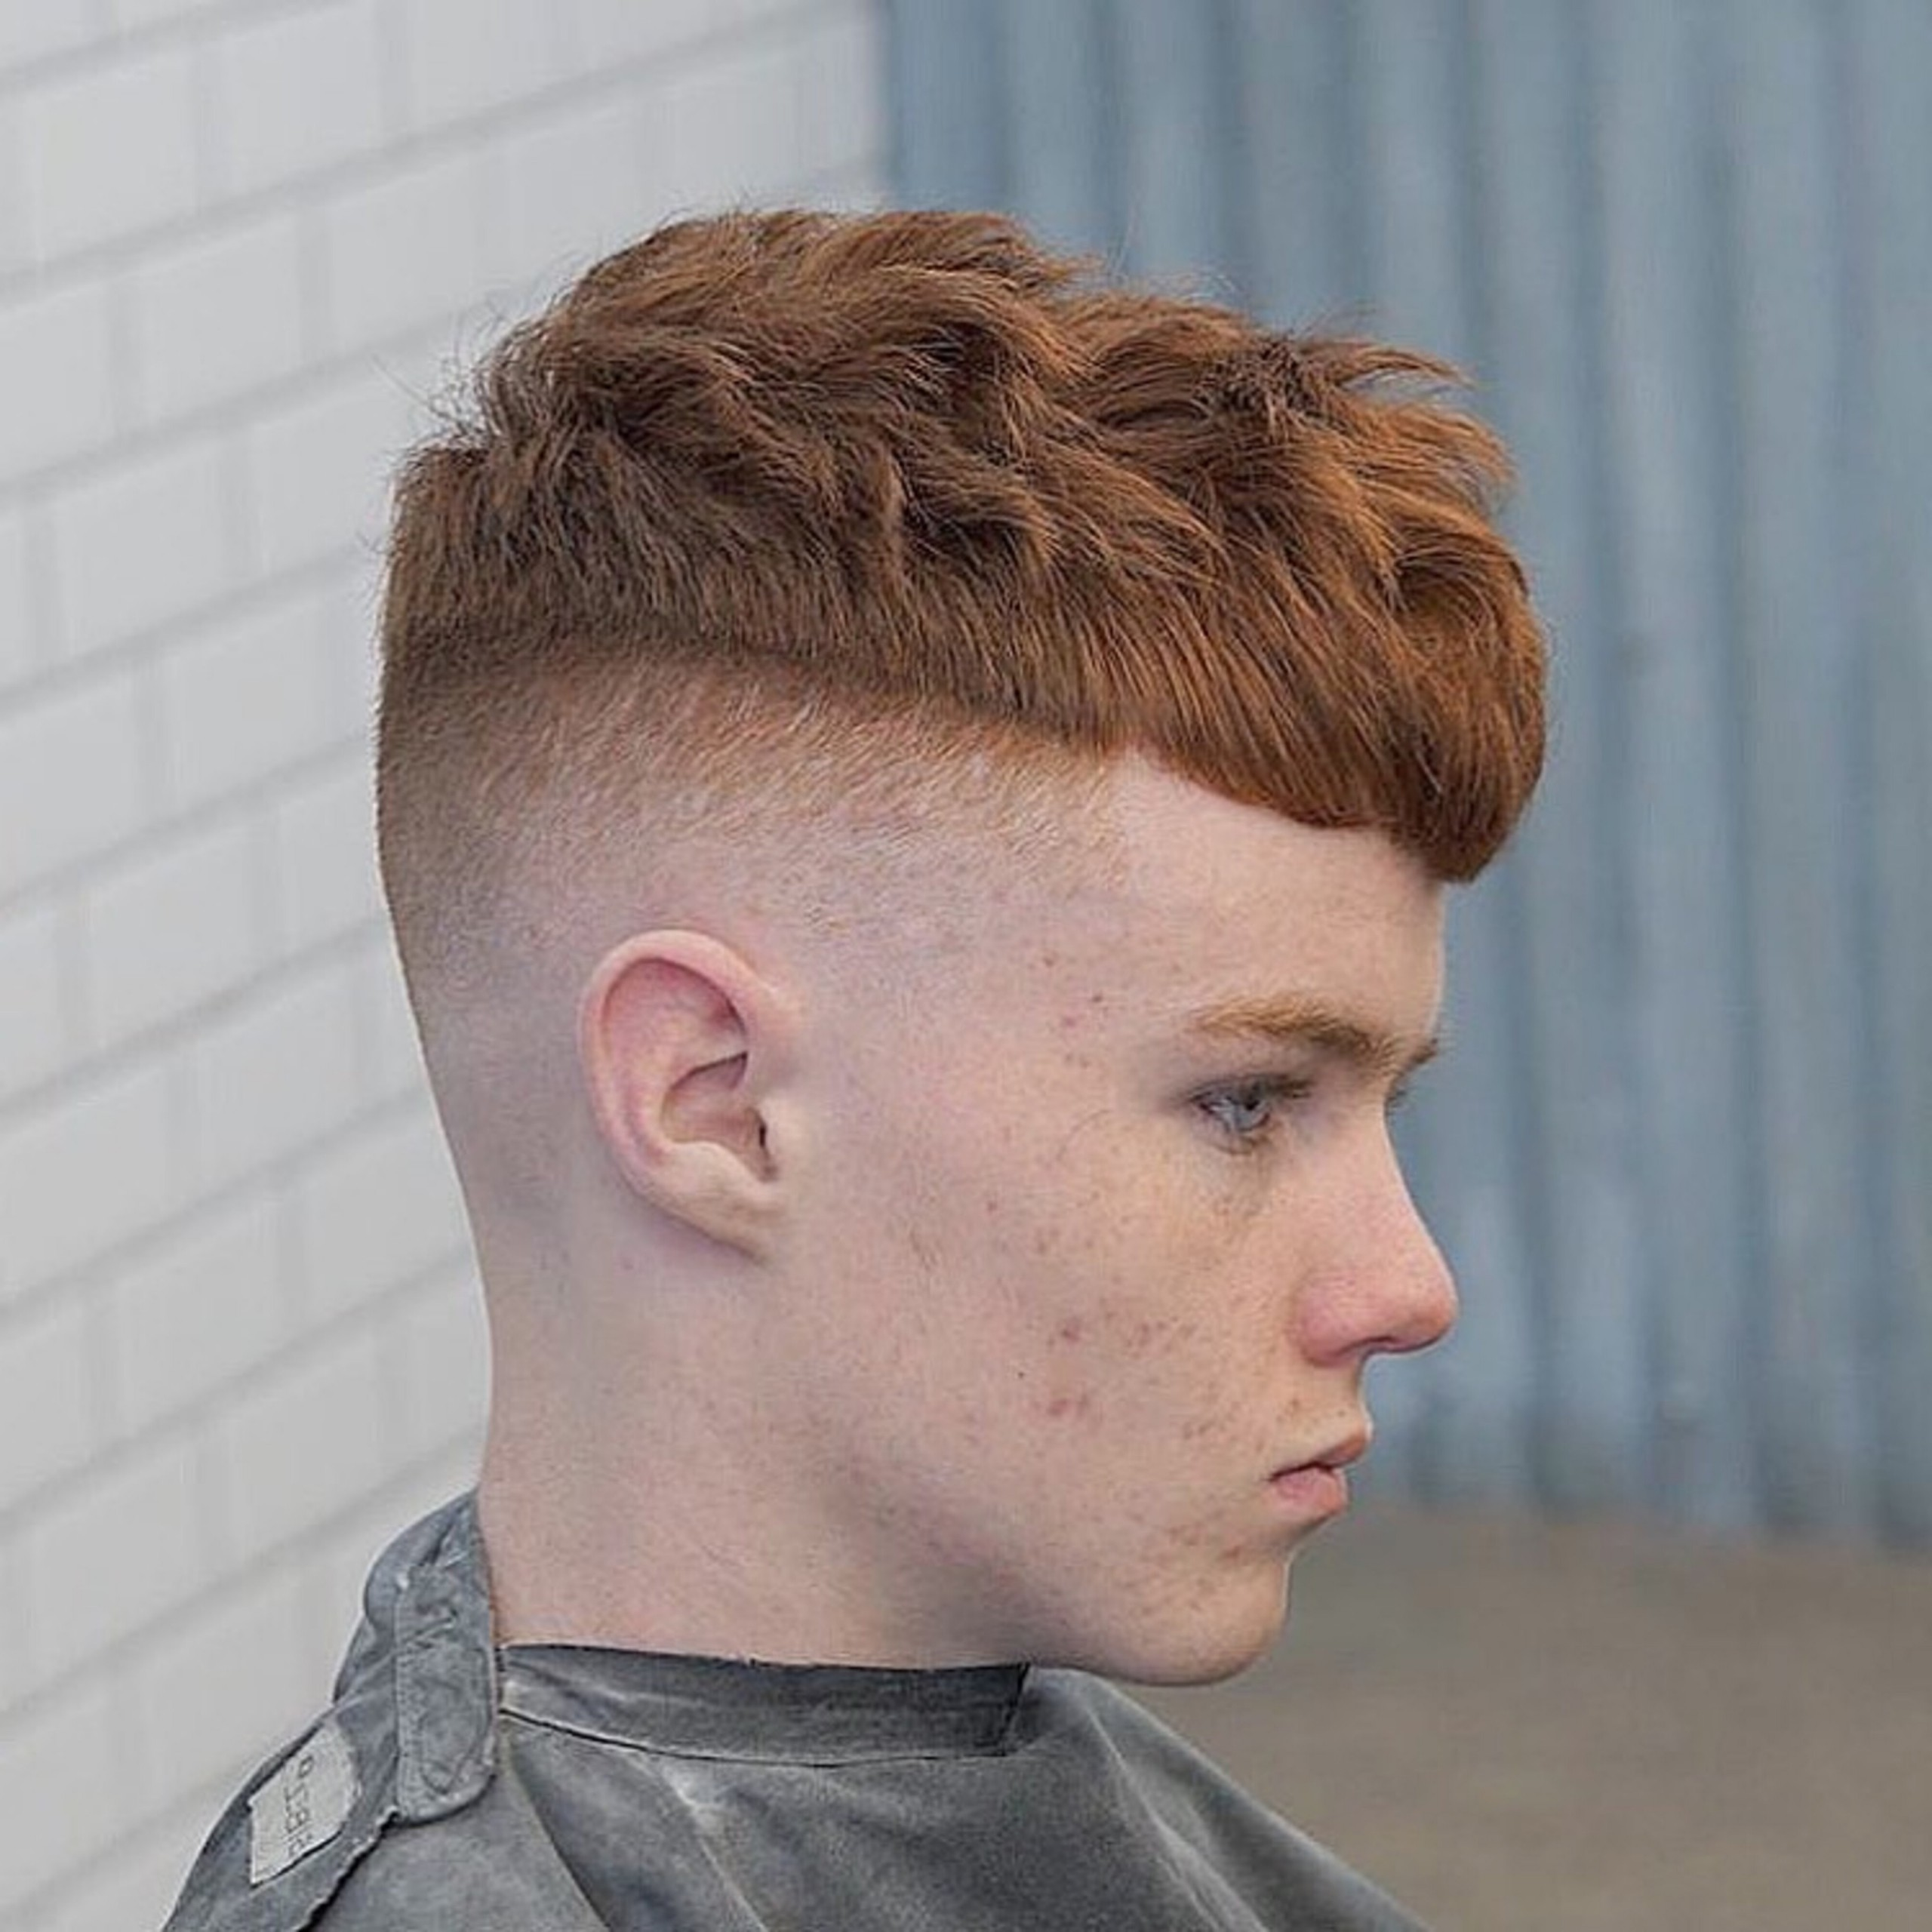 A hairstyle with a faded transition for little boys.